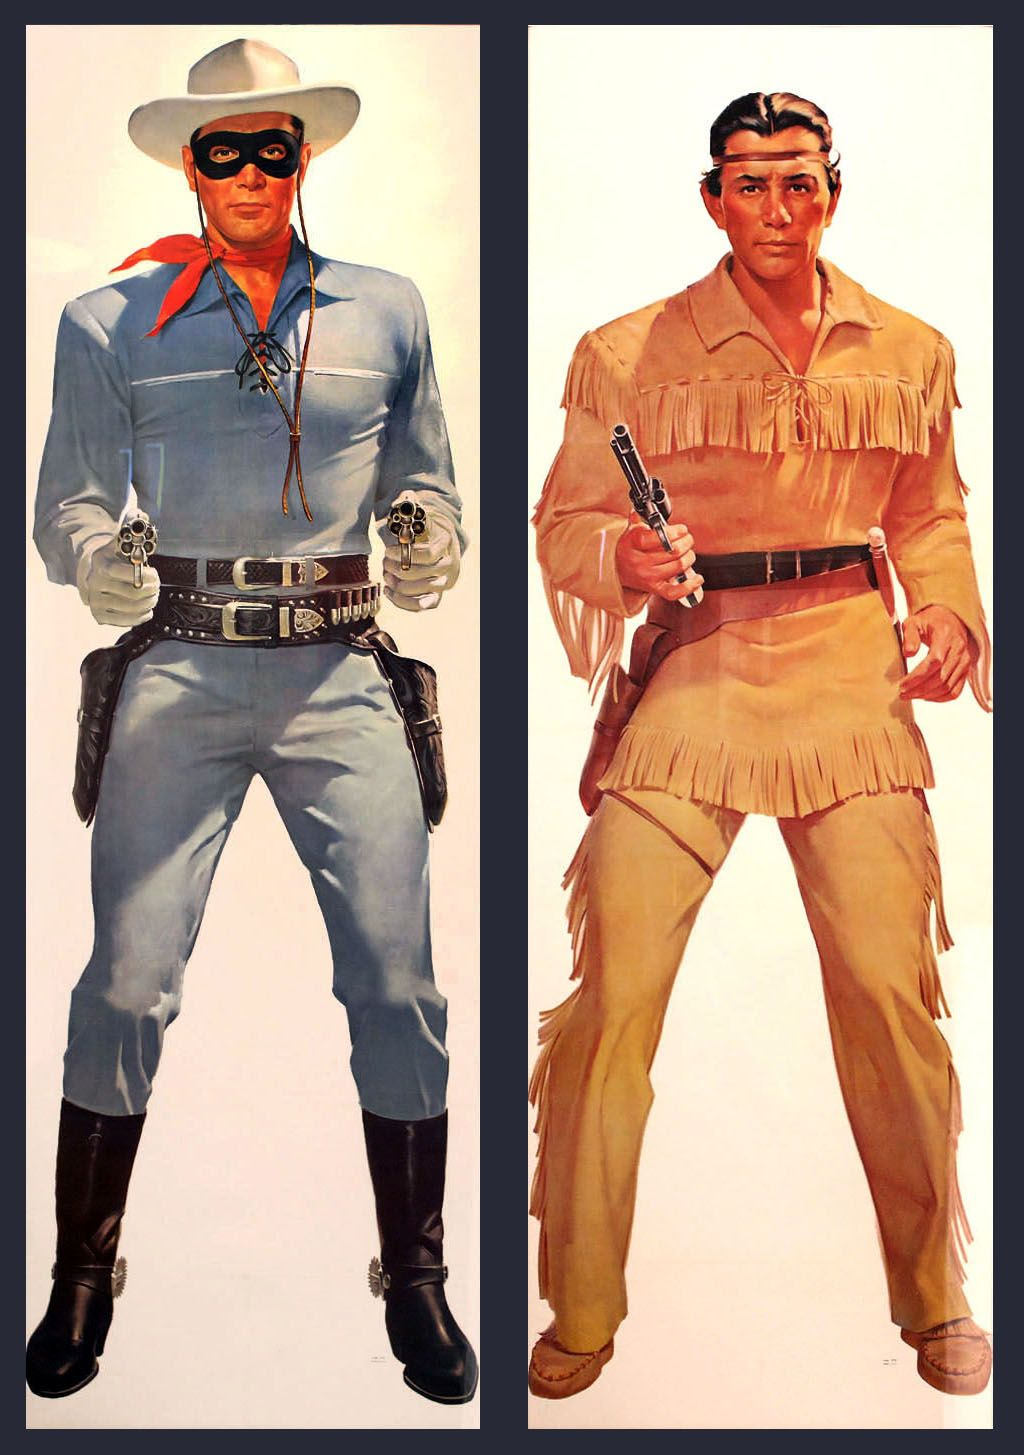 Disney lone ranger coloring pages - Lone Ranger And Tonto Owen Gallery Vintage Posters Entertainment